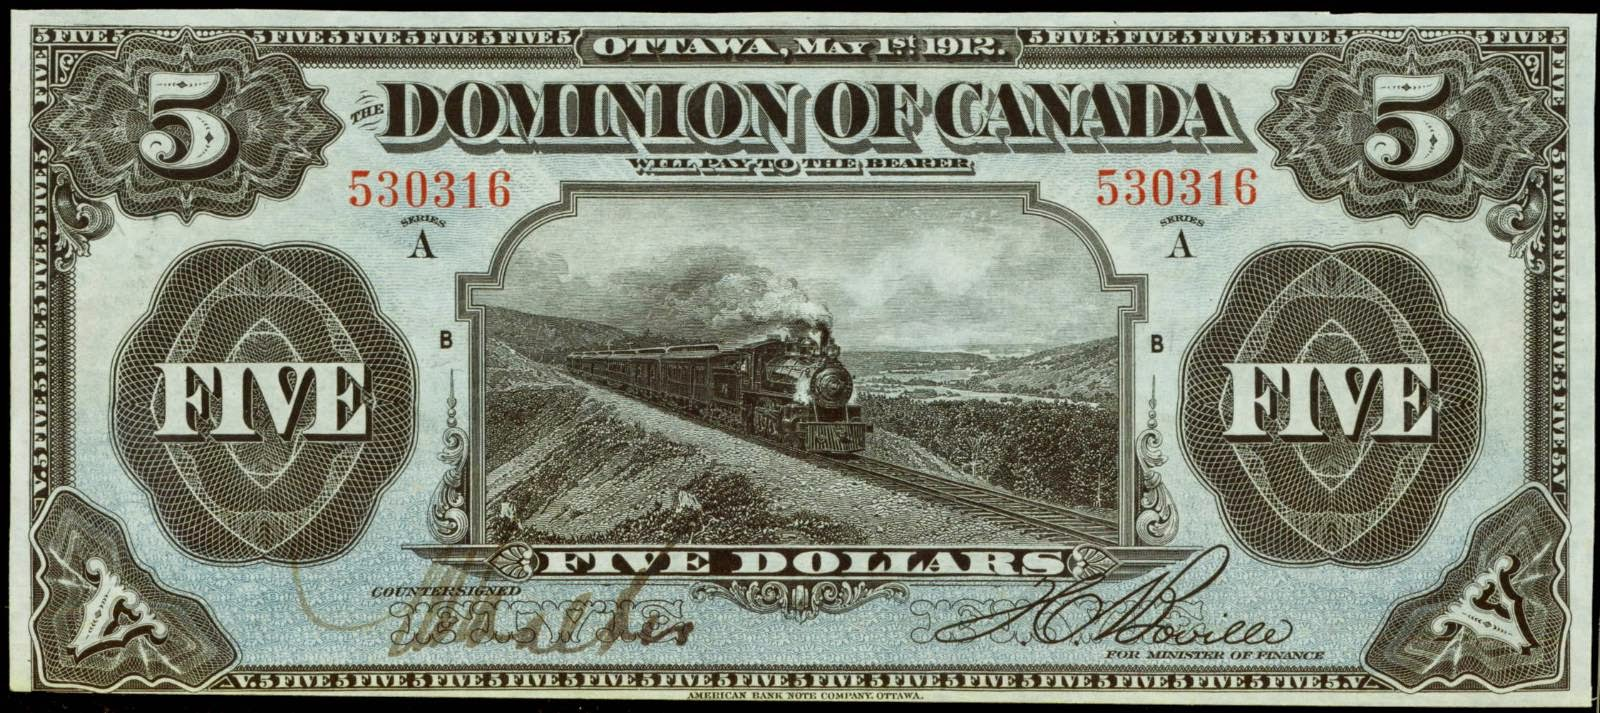 Dominion of Canada 5 Dollars banknote 1912 Train Note